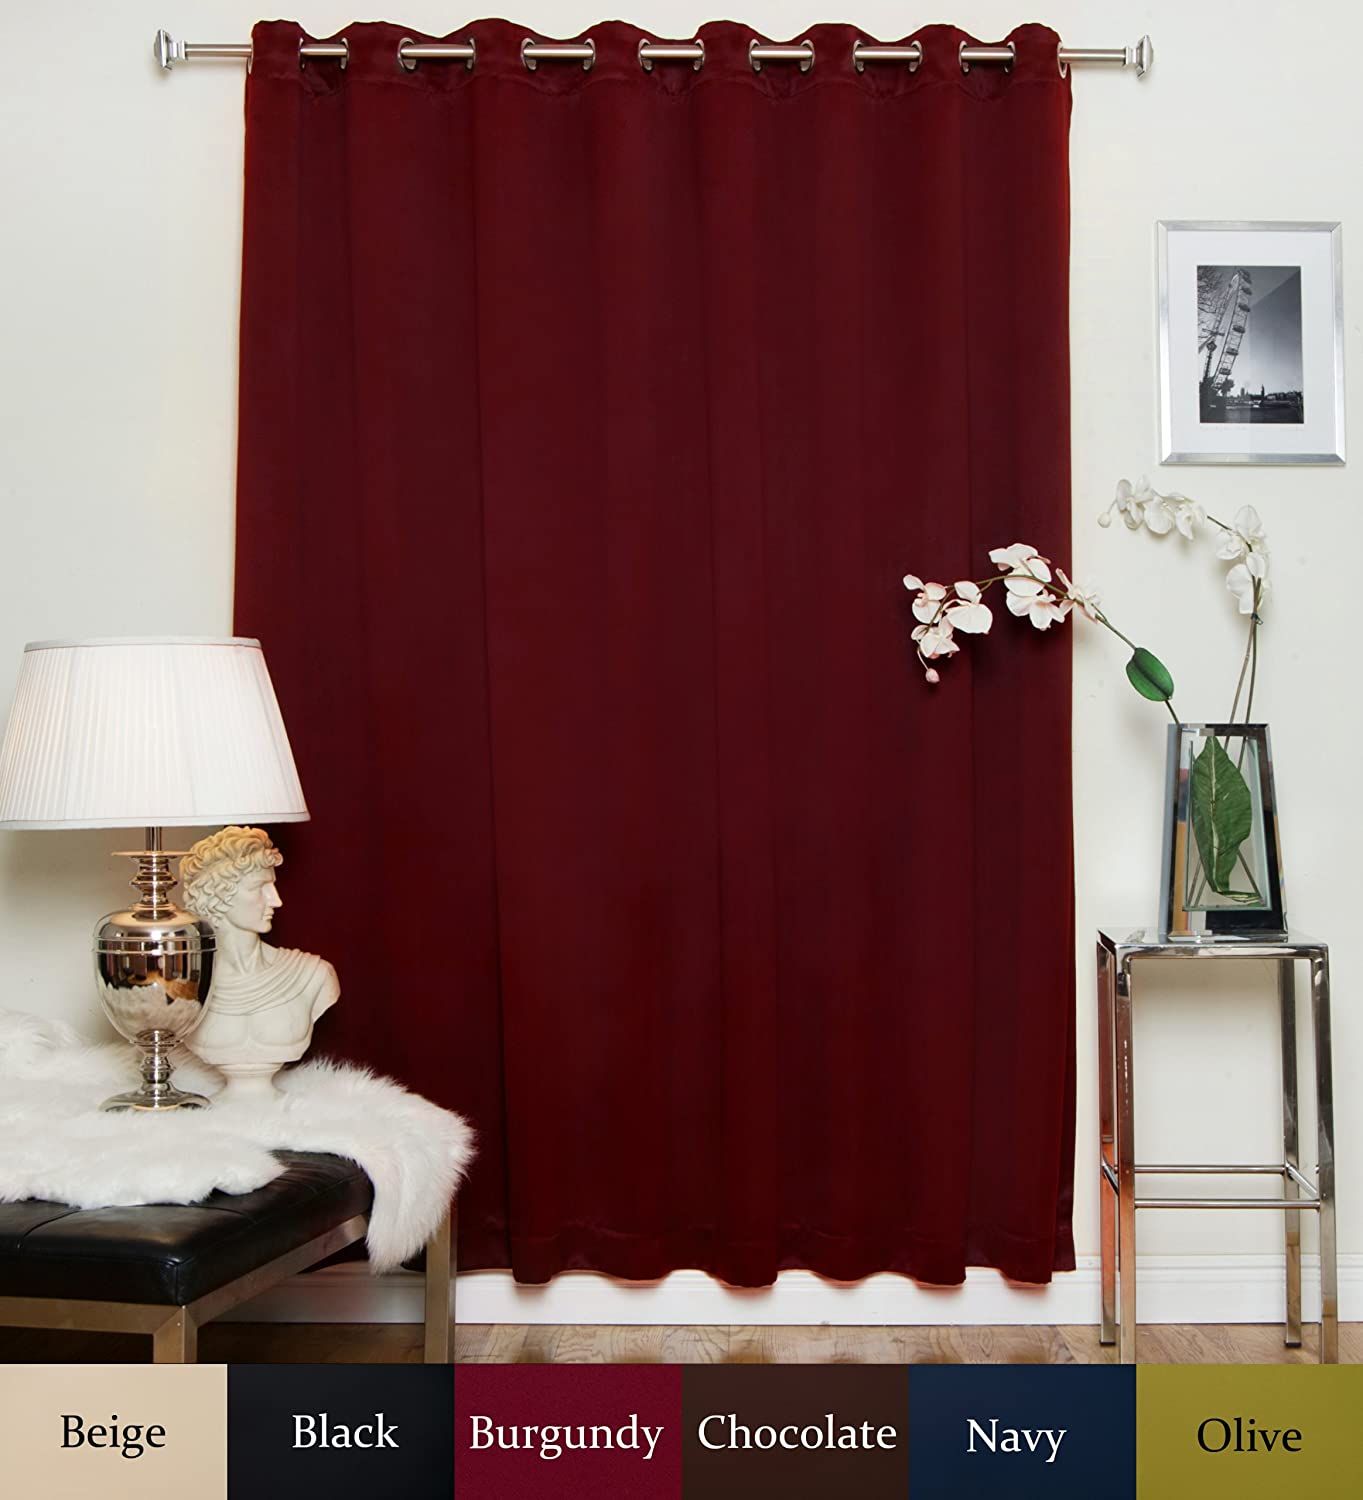 Blackout Curtain Burgundy Wide Width Nickel Grommet Top Thermal Insulated 100 Inch Wide by 108 Inch Long Panel